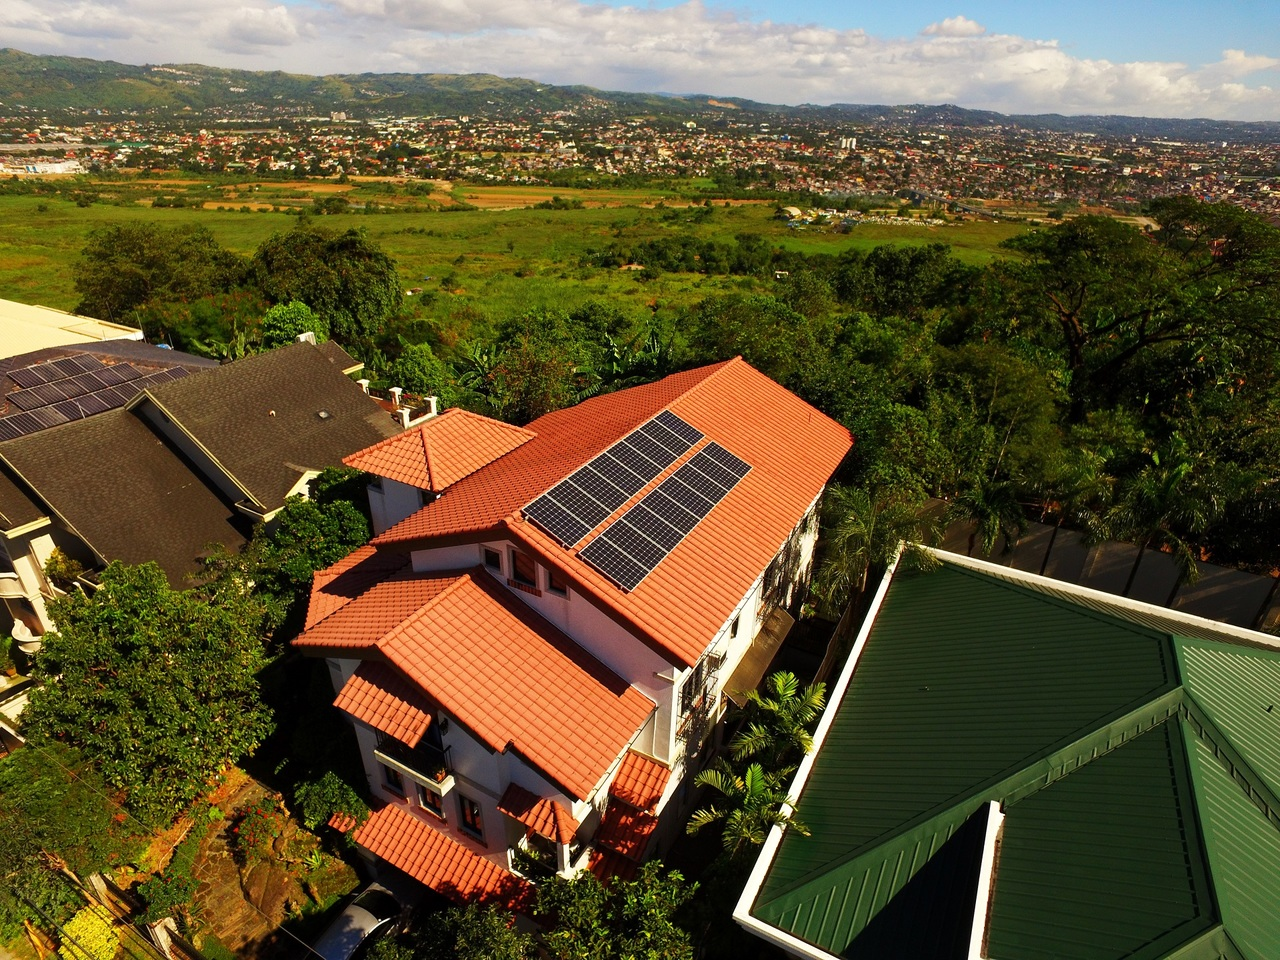 Top view of a house with solar